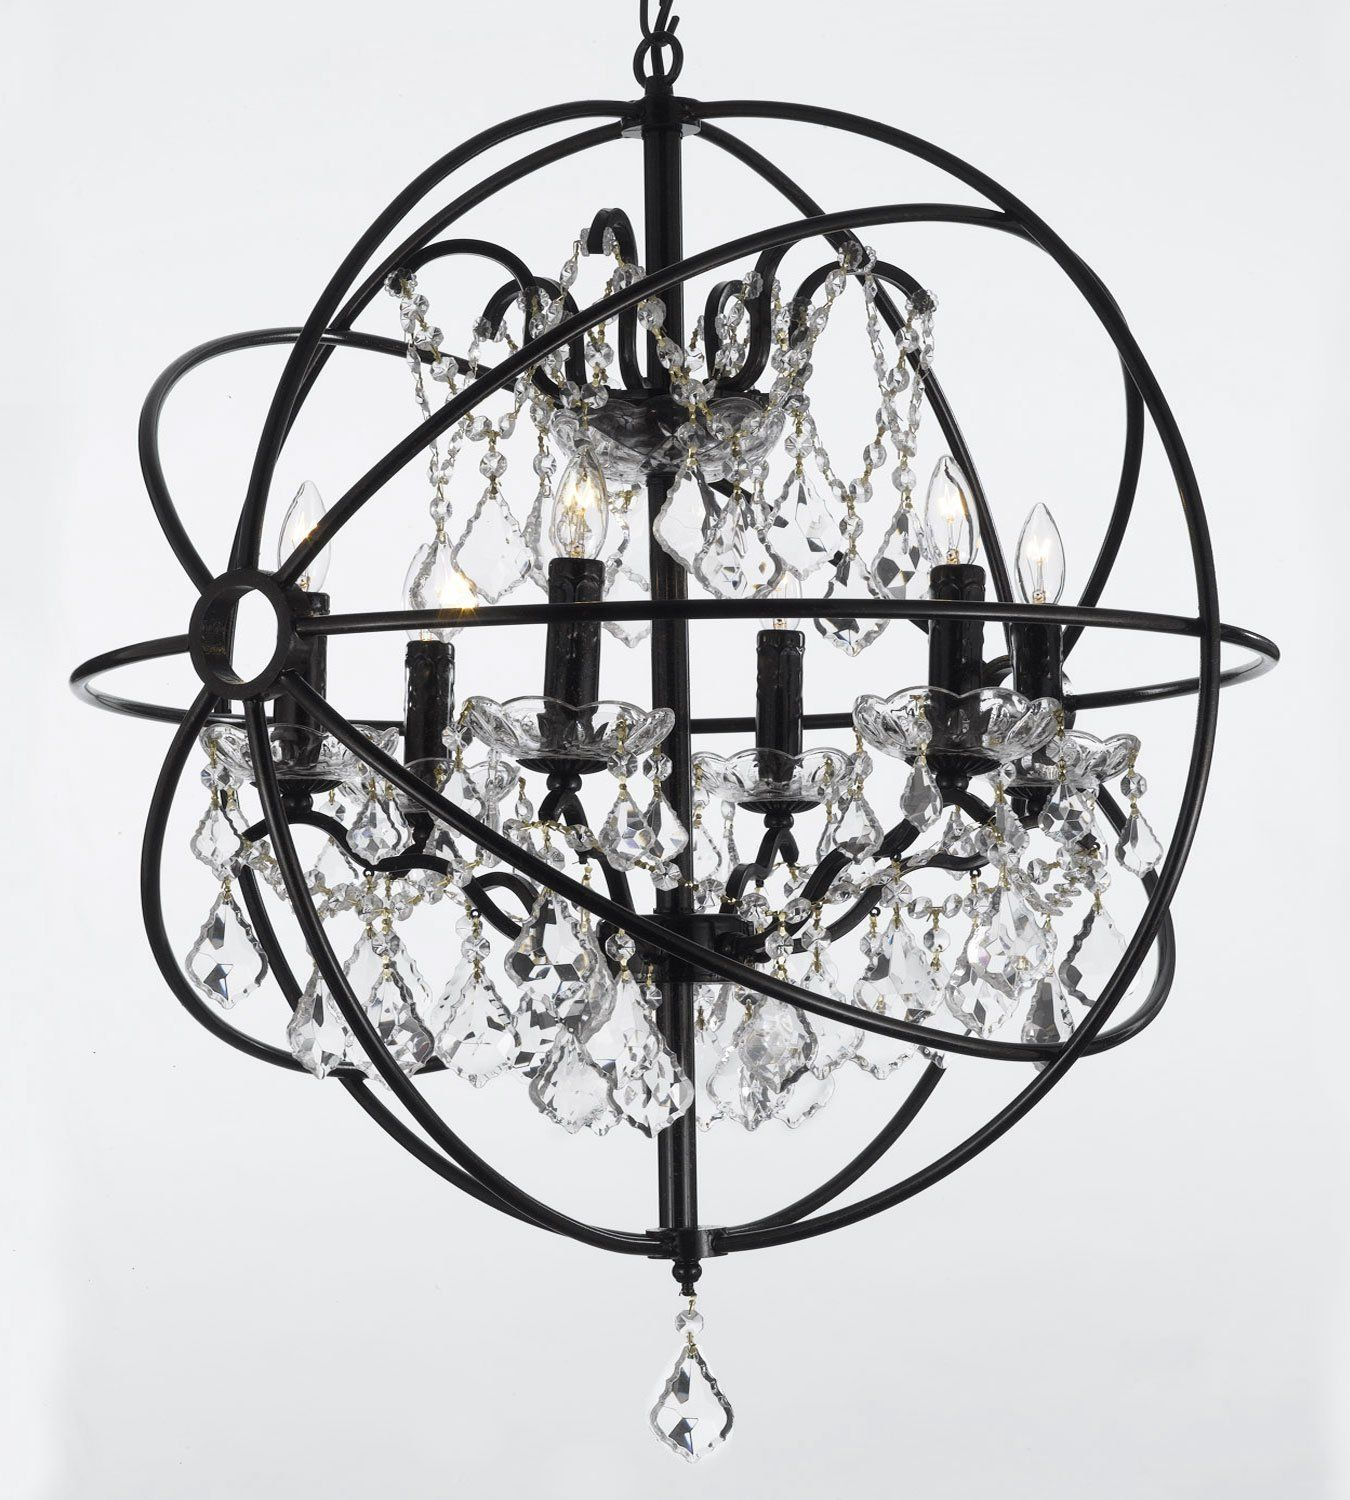 Foucault S Orb Wrought Iron Crystal Chandelier Lighting Country French 6 Lights Ht25 X Wd24 Ceiling Fixture Sphere